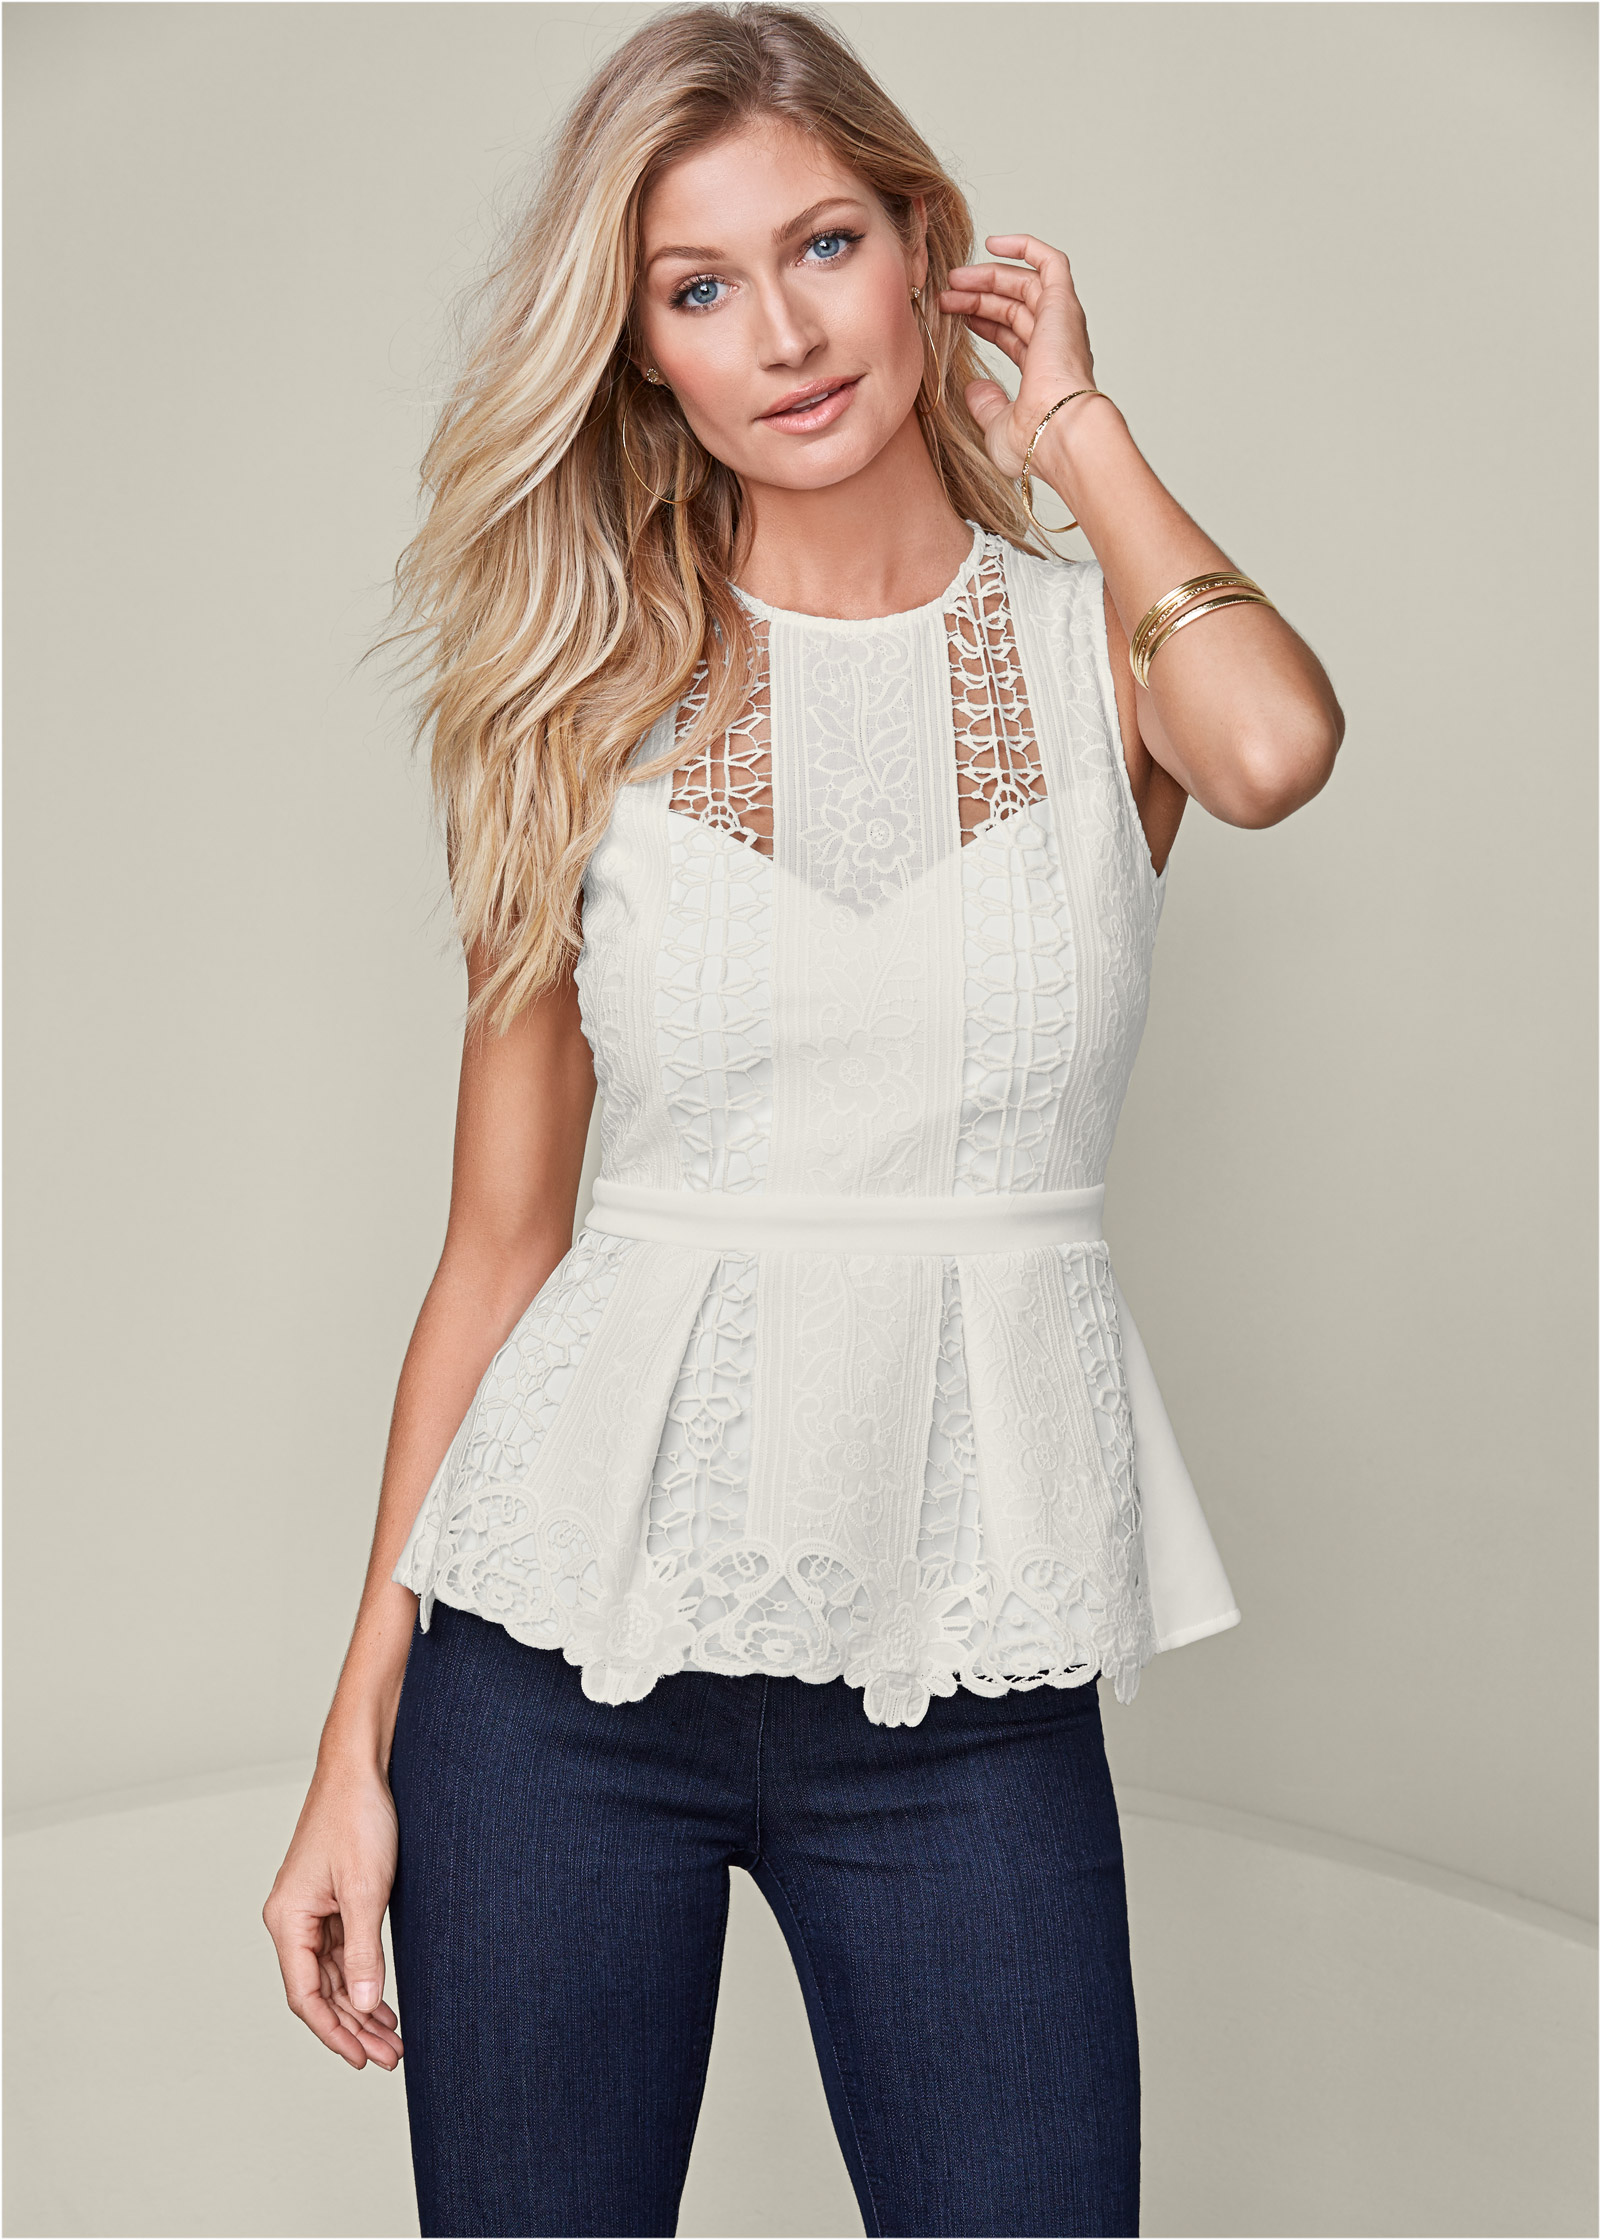 LACE PEPLUM TOP in White | VENUS